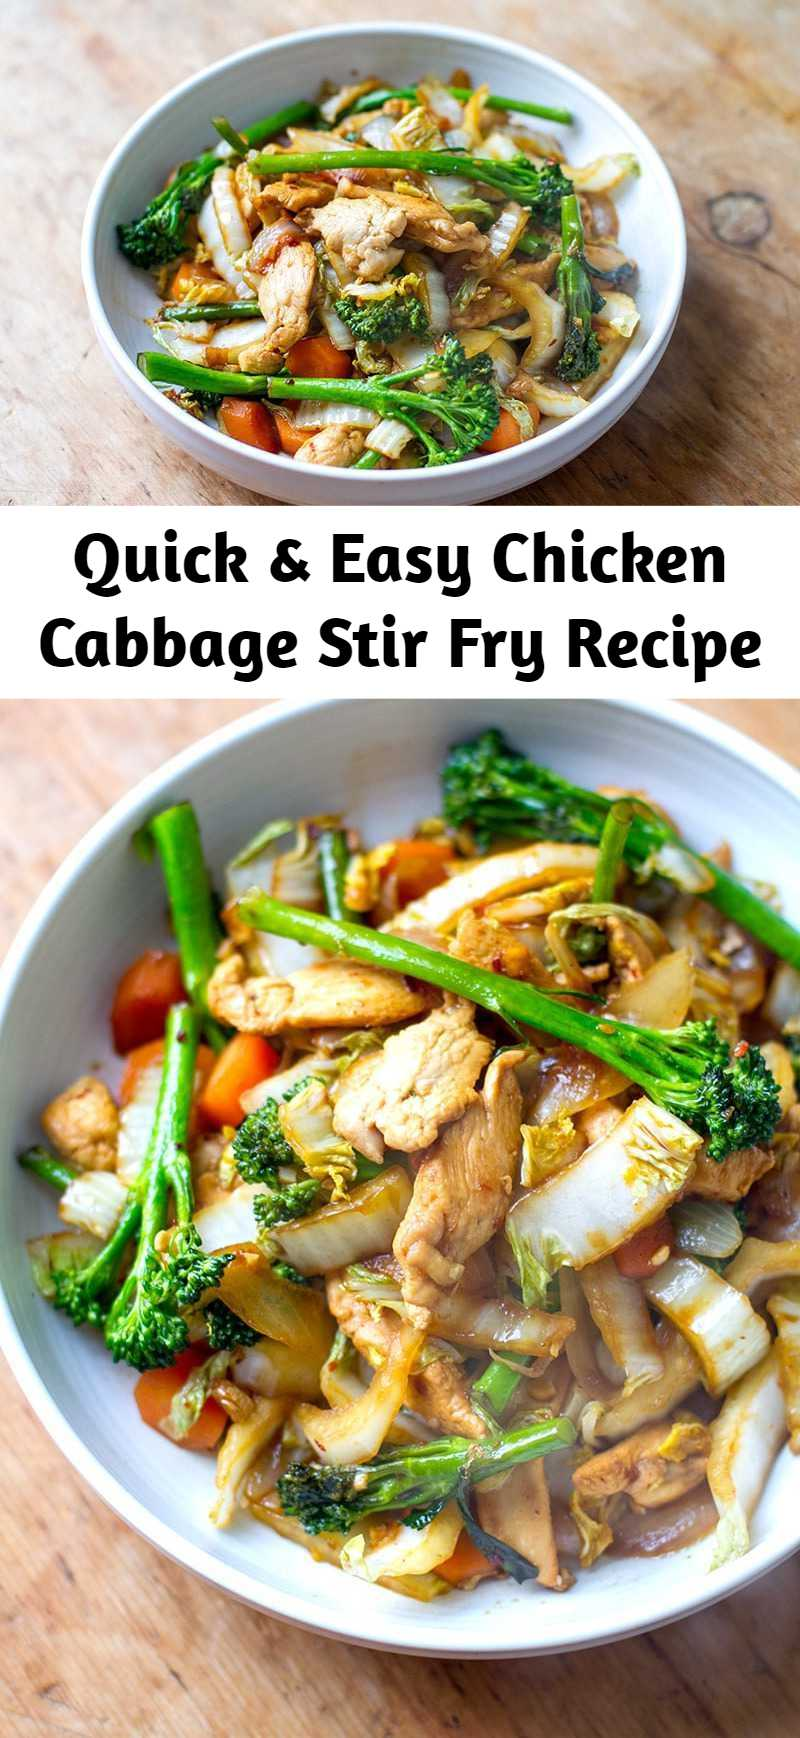 Quick & Easy Chicken Cabbage Stir Fry Recipe - This quick and easy chicken cabbage stir-fry is a great weeknight meal. It's healthy, nutritious, gluten-free, paleo, low-carb and Whole30 friendly.